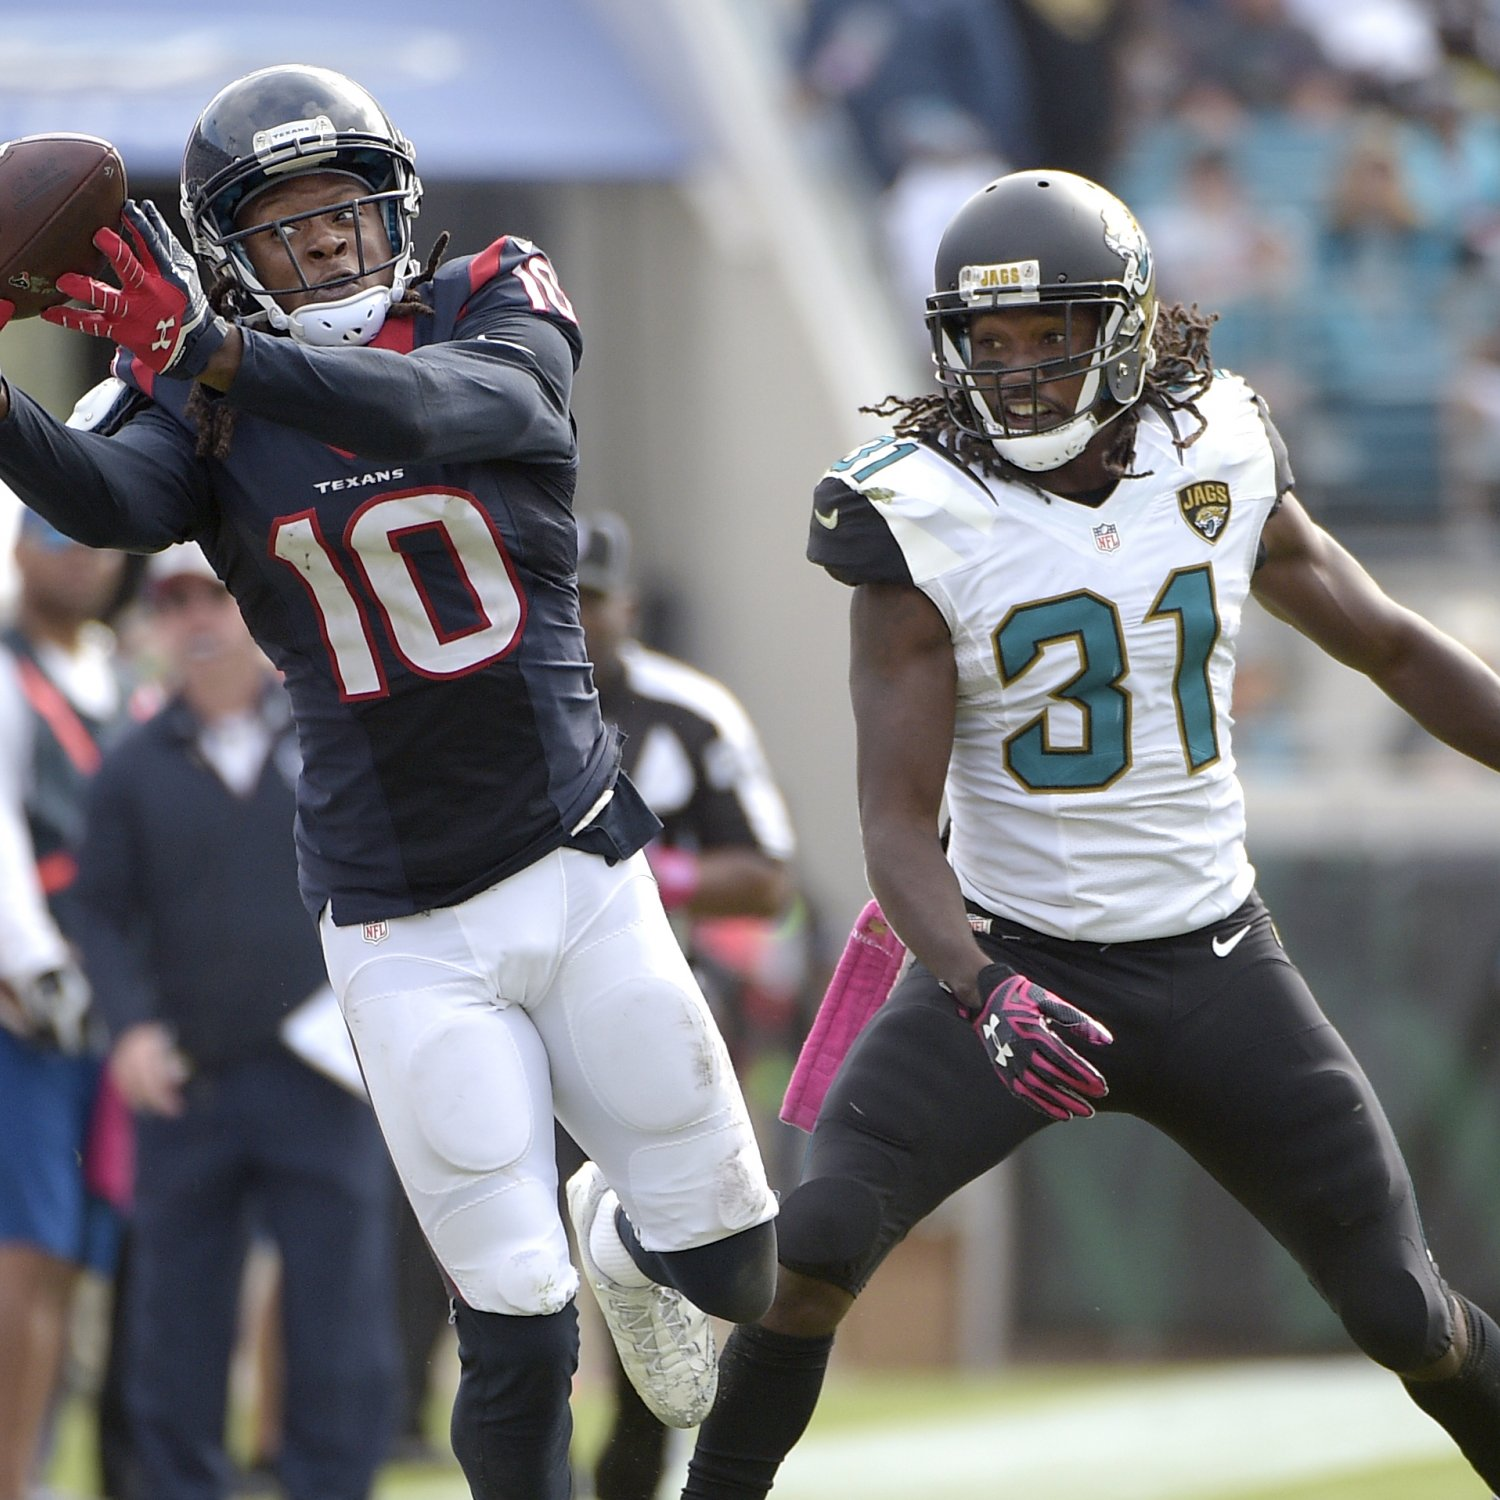 Fantasy Football Week 7 Top 50 Flex Players With Ppr